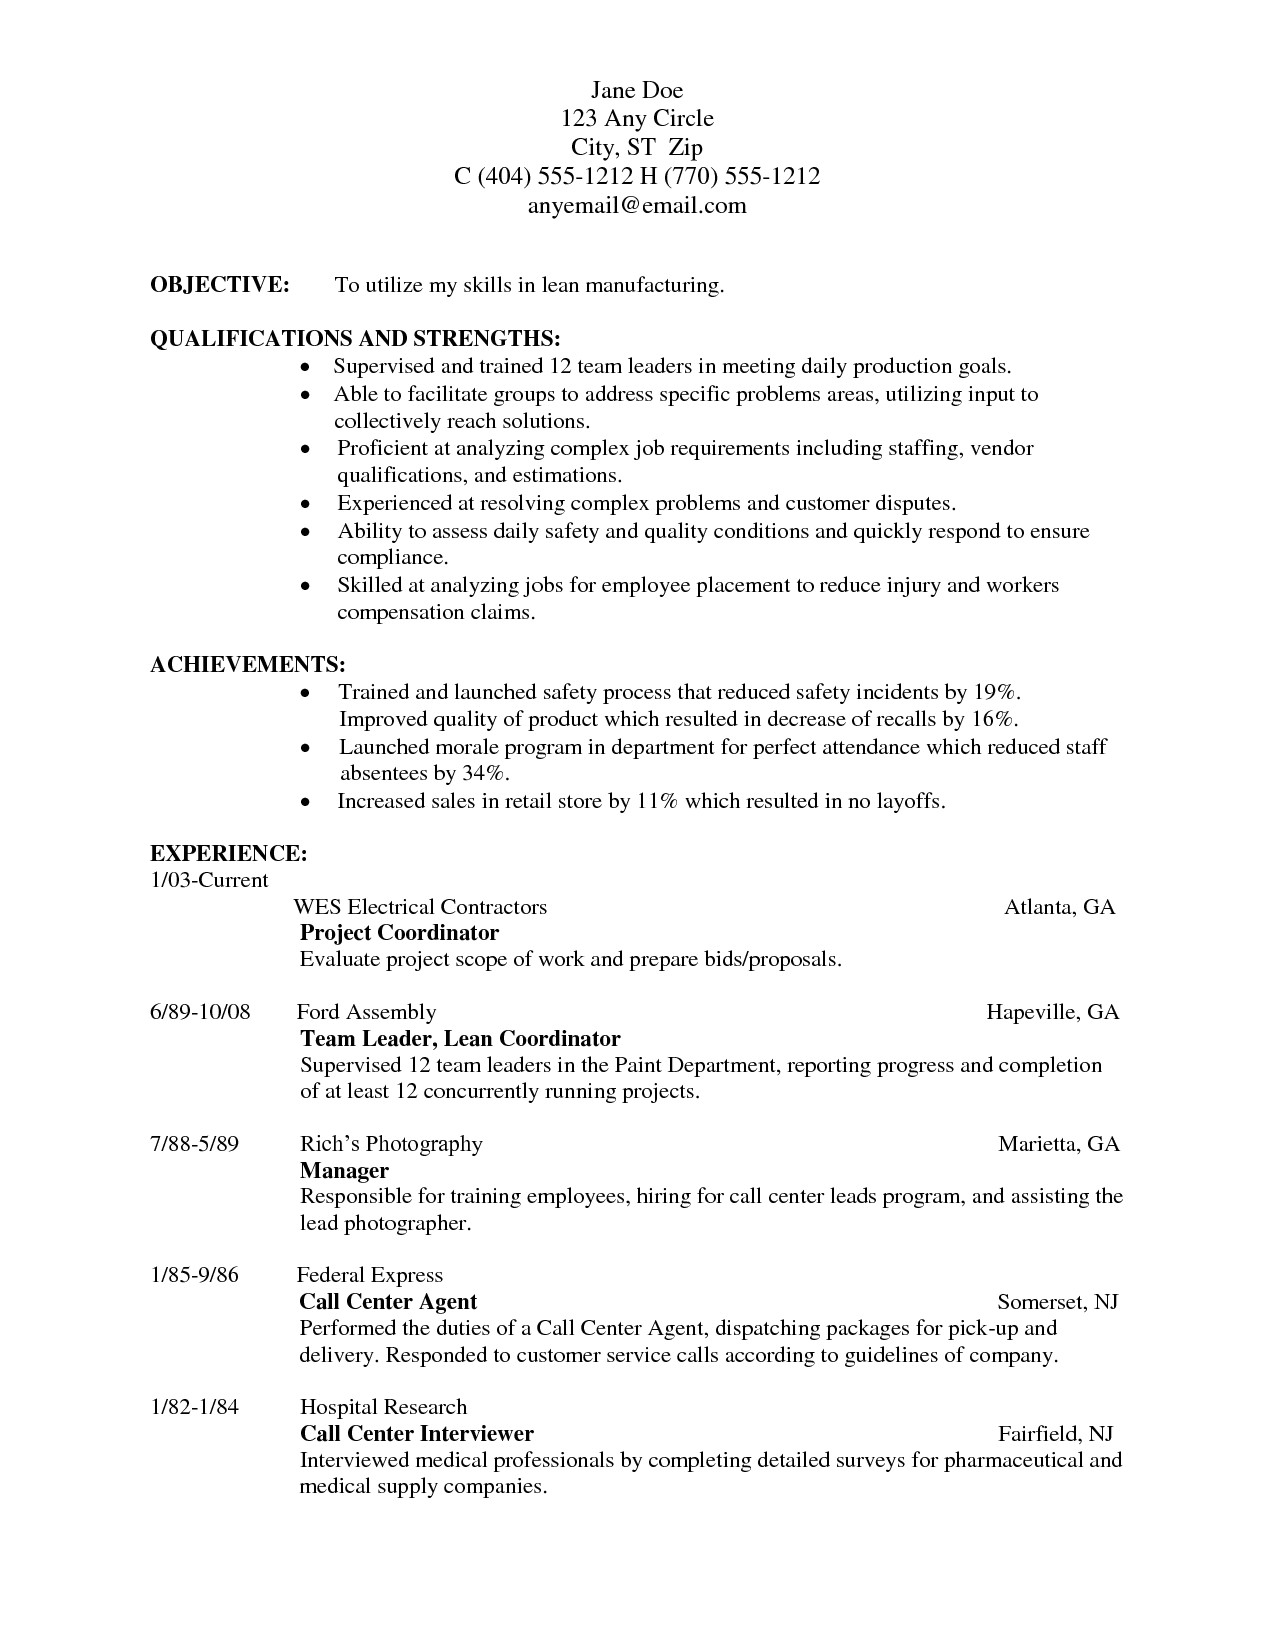 Resume Templates for Manufacturing Jobs Resume for Manufacturing Portablegasgrillweber Com